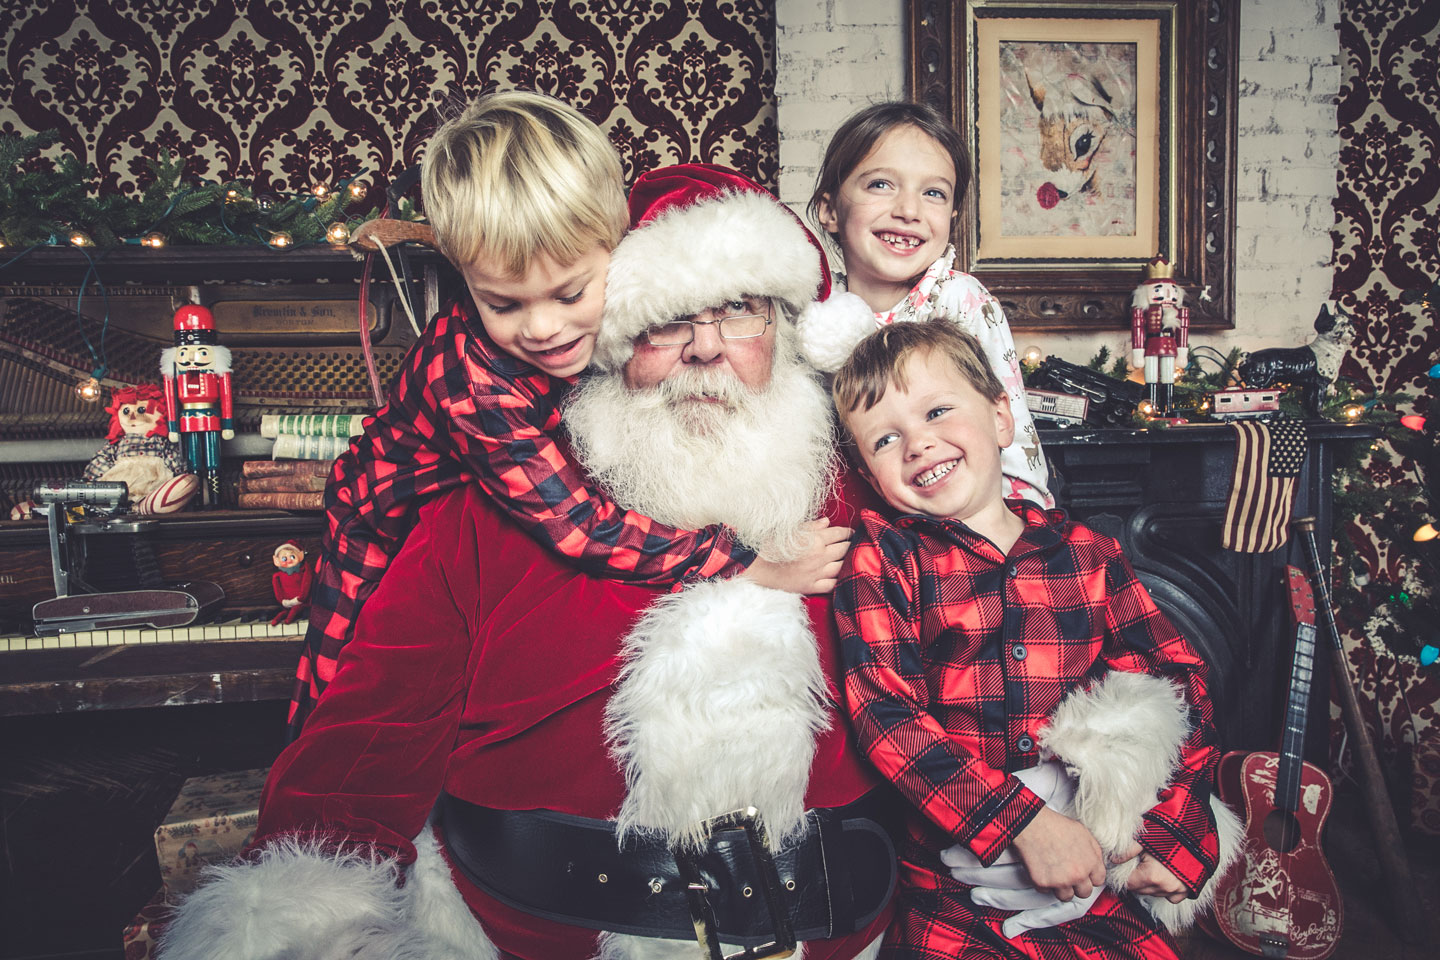 How To Get A Great Photo With Santa Chick Fil A